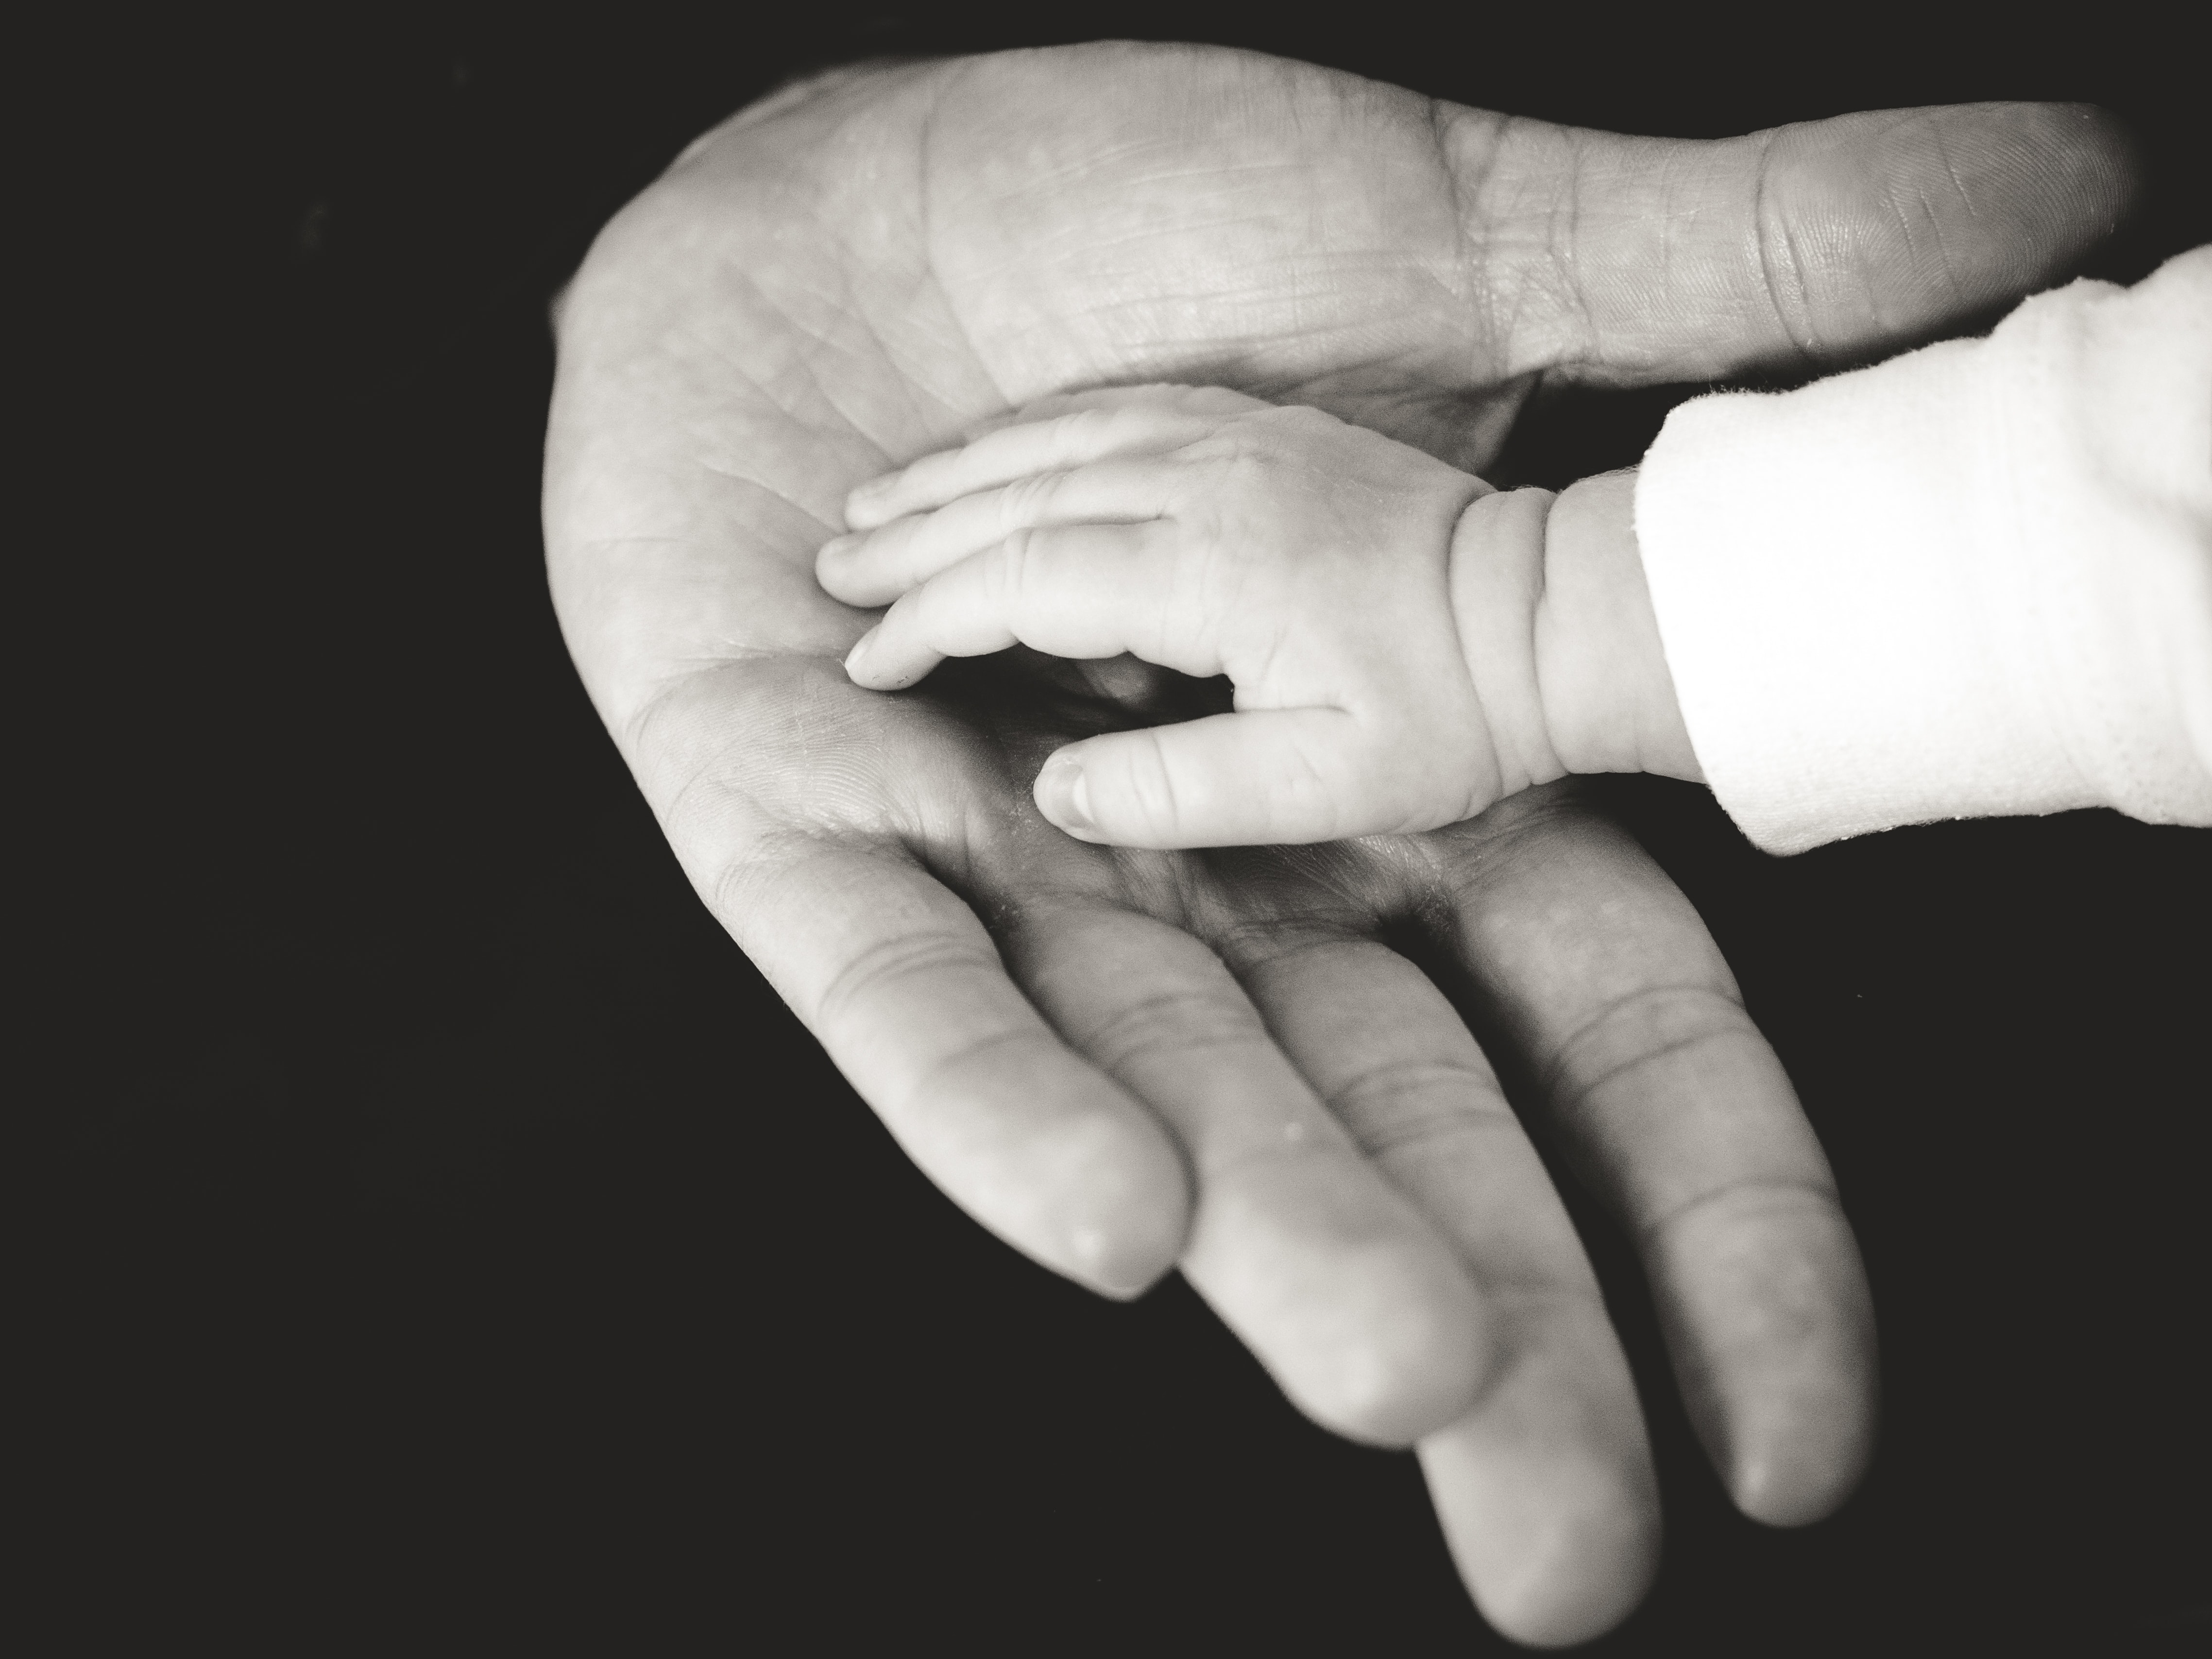 child and parent hands photography